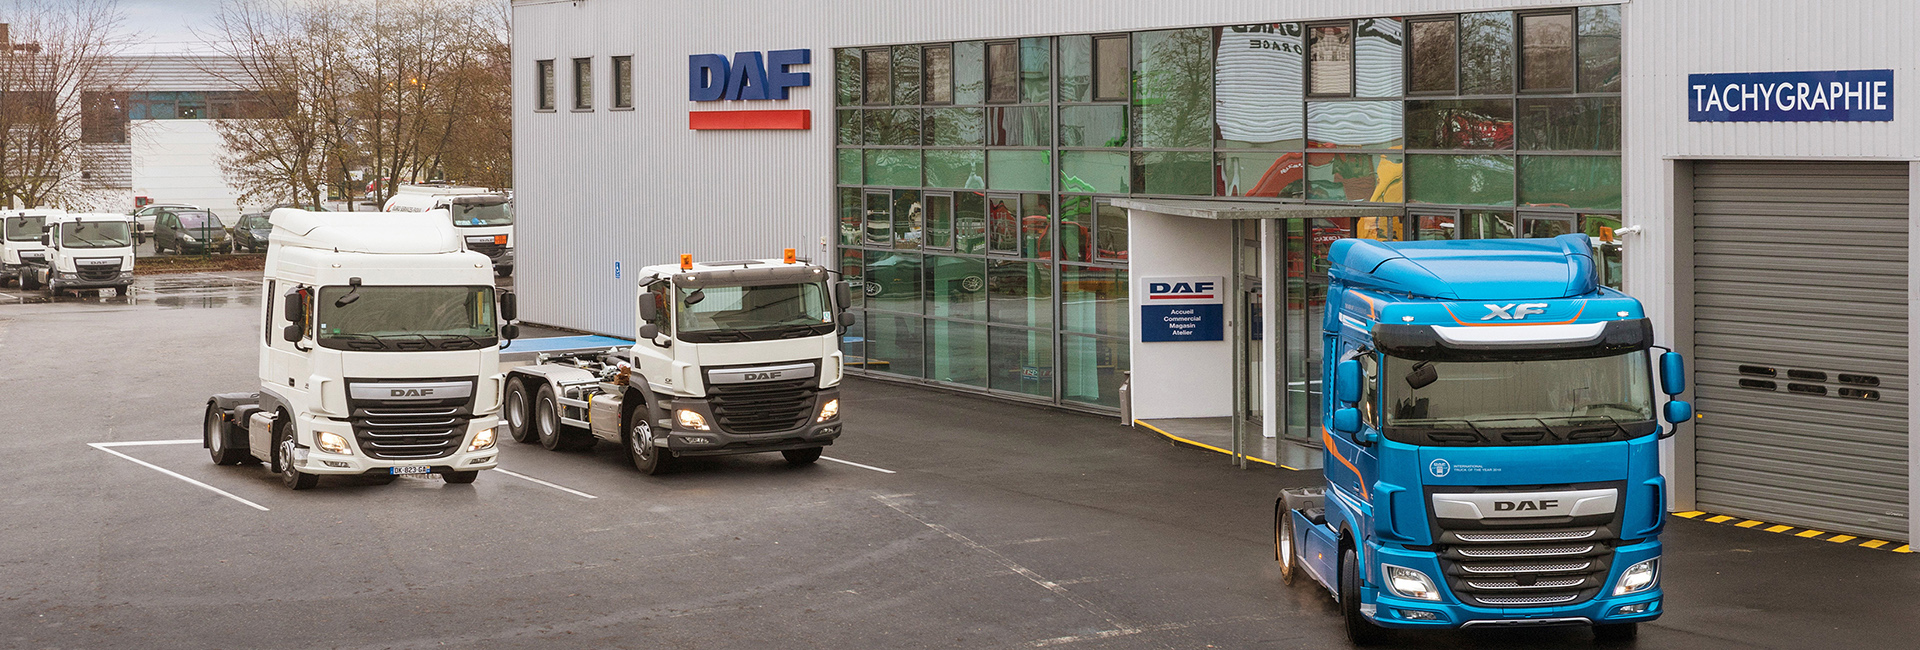 DAF opens Paris dealership premises